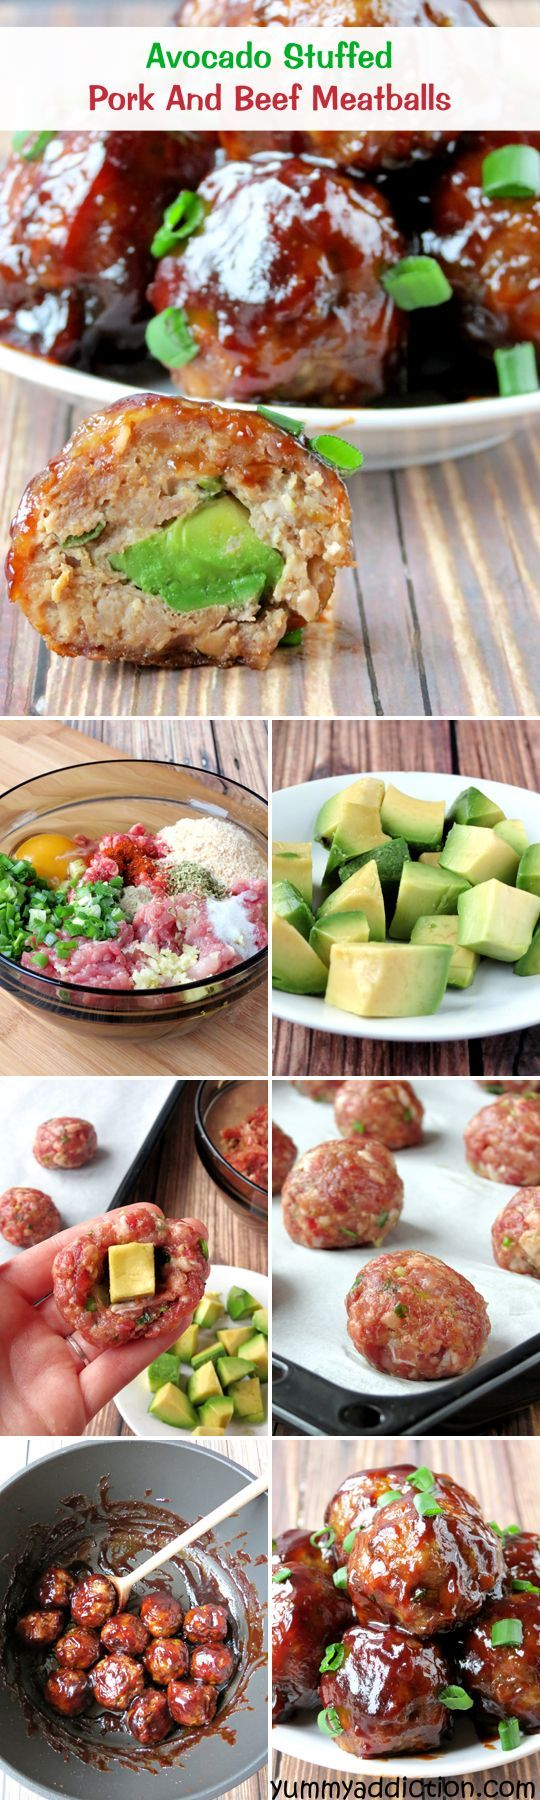 Avocado Stuffed Pork And Beef Meatballs | YummyAddiction.com